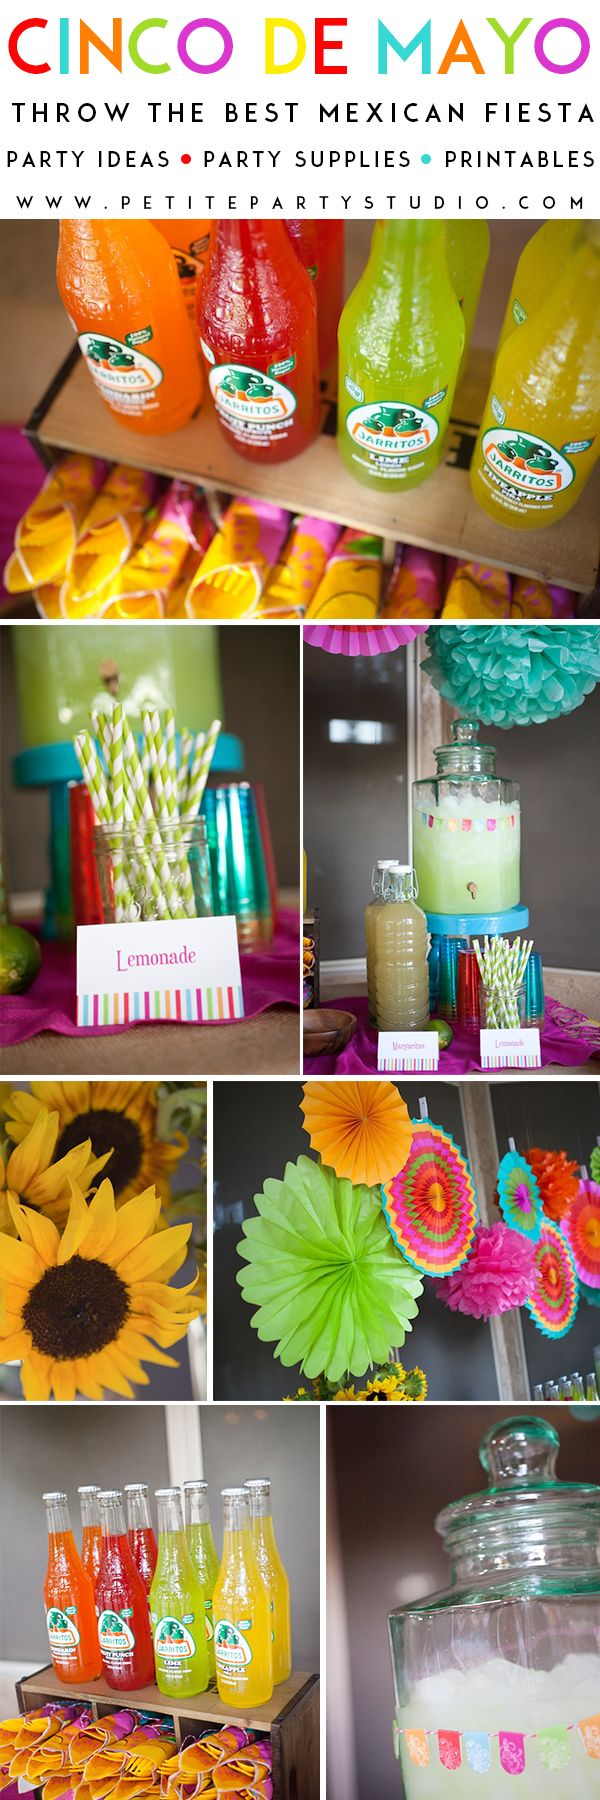 Cinco de Mayo Party Ideas by Petite Party Studio | Ideas para una fiesta inspirada en el Cinco de Mayo